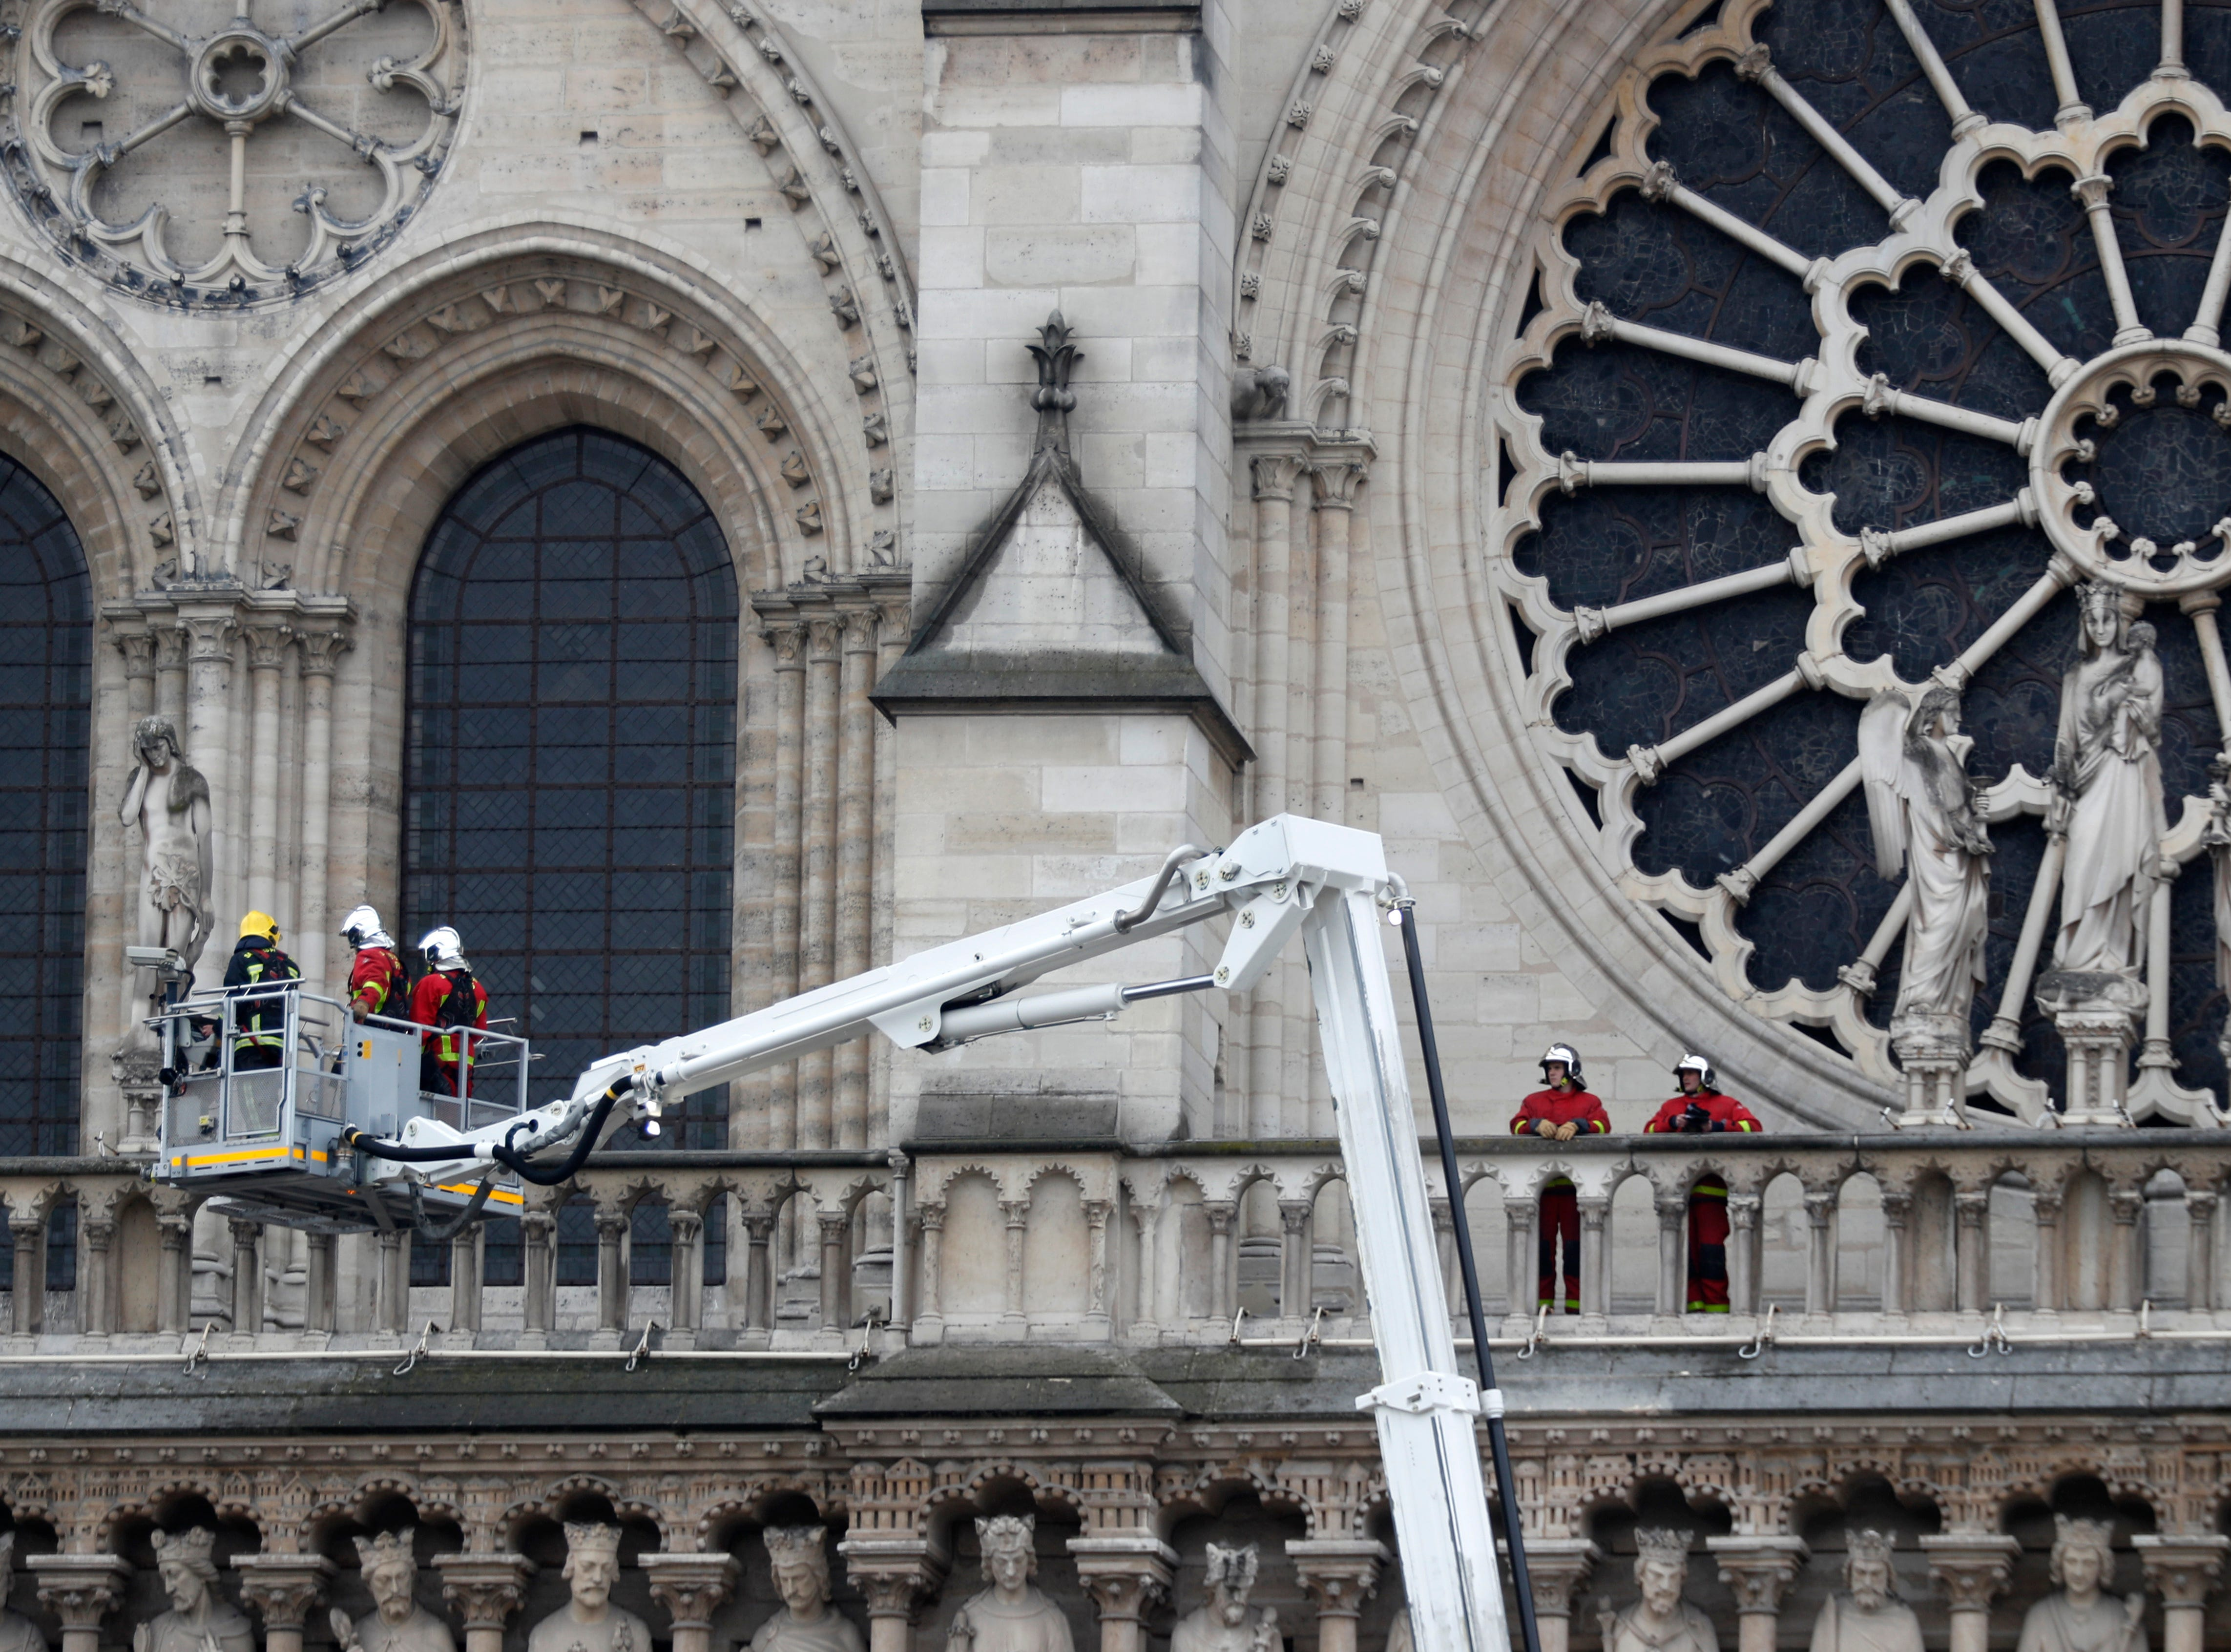 Firefighters work at the facade of Notre Dame cathedral Tuesday April 16, 2019 in Paris. Experts assessed the blackened shell of Paris' iconic Notre Dame Tuesday morning to establish next steps to save what remains after a devastating fire destroyed much of the cathedral that had survived almost 900 years of history. (AP Photo/Thibault Camus)